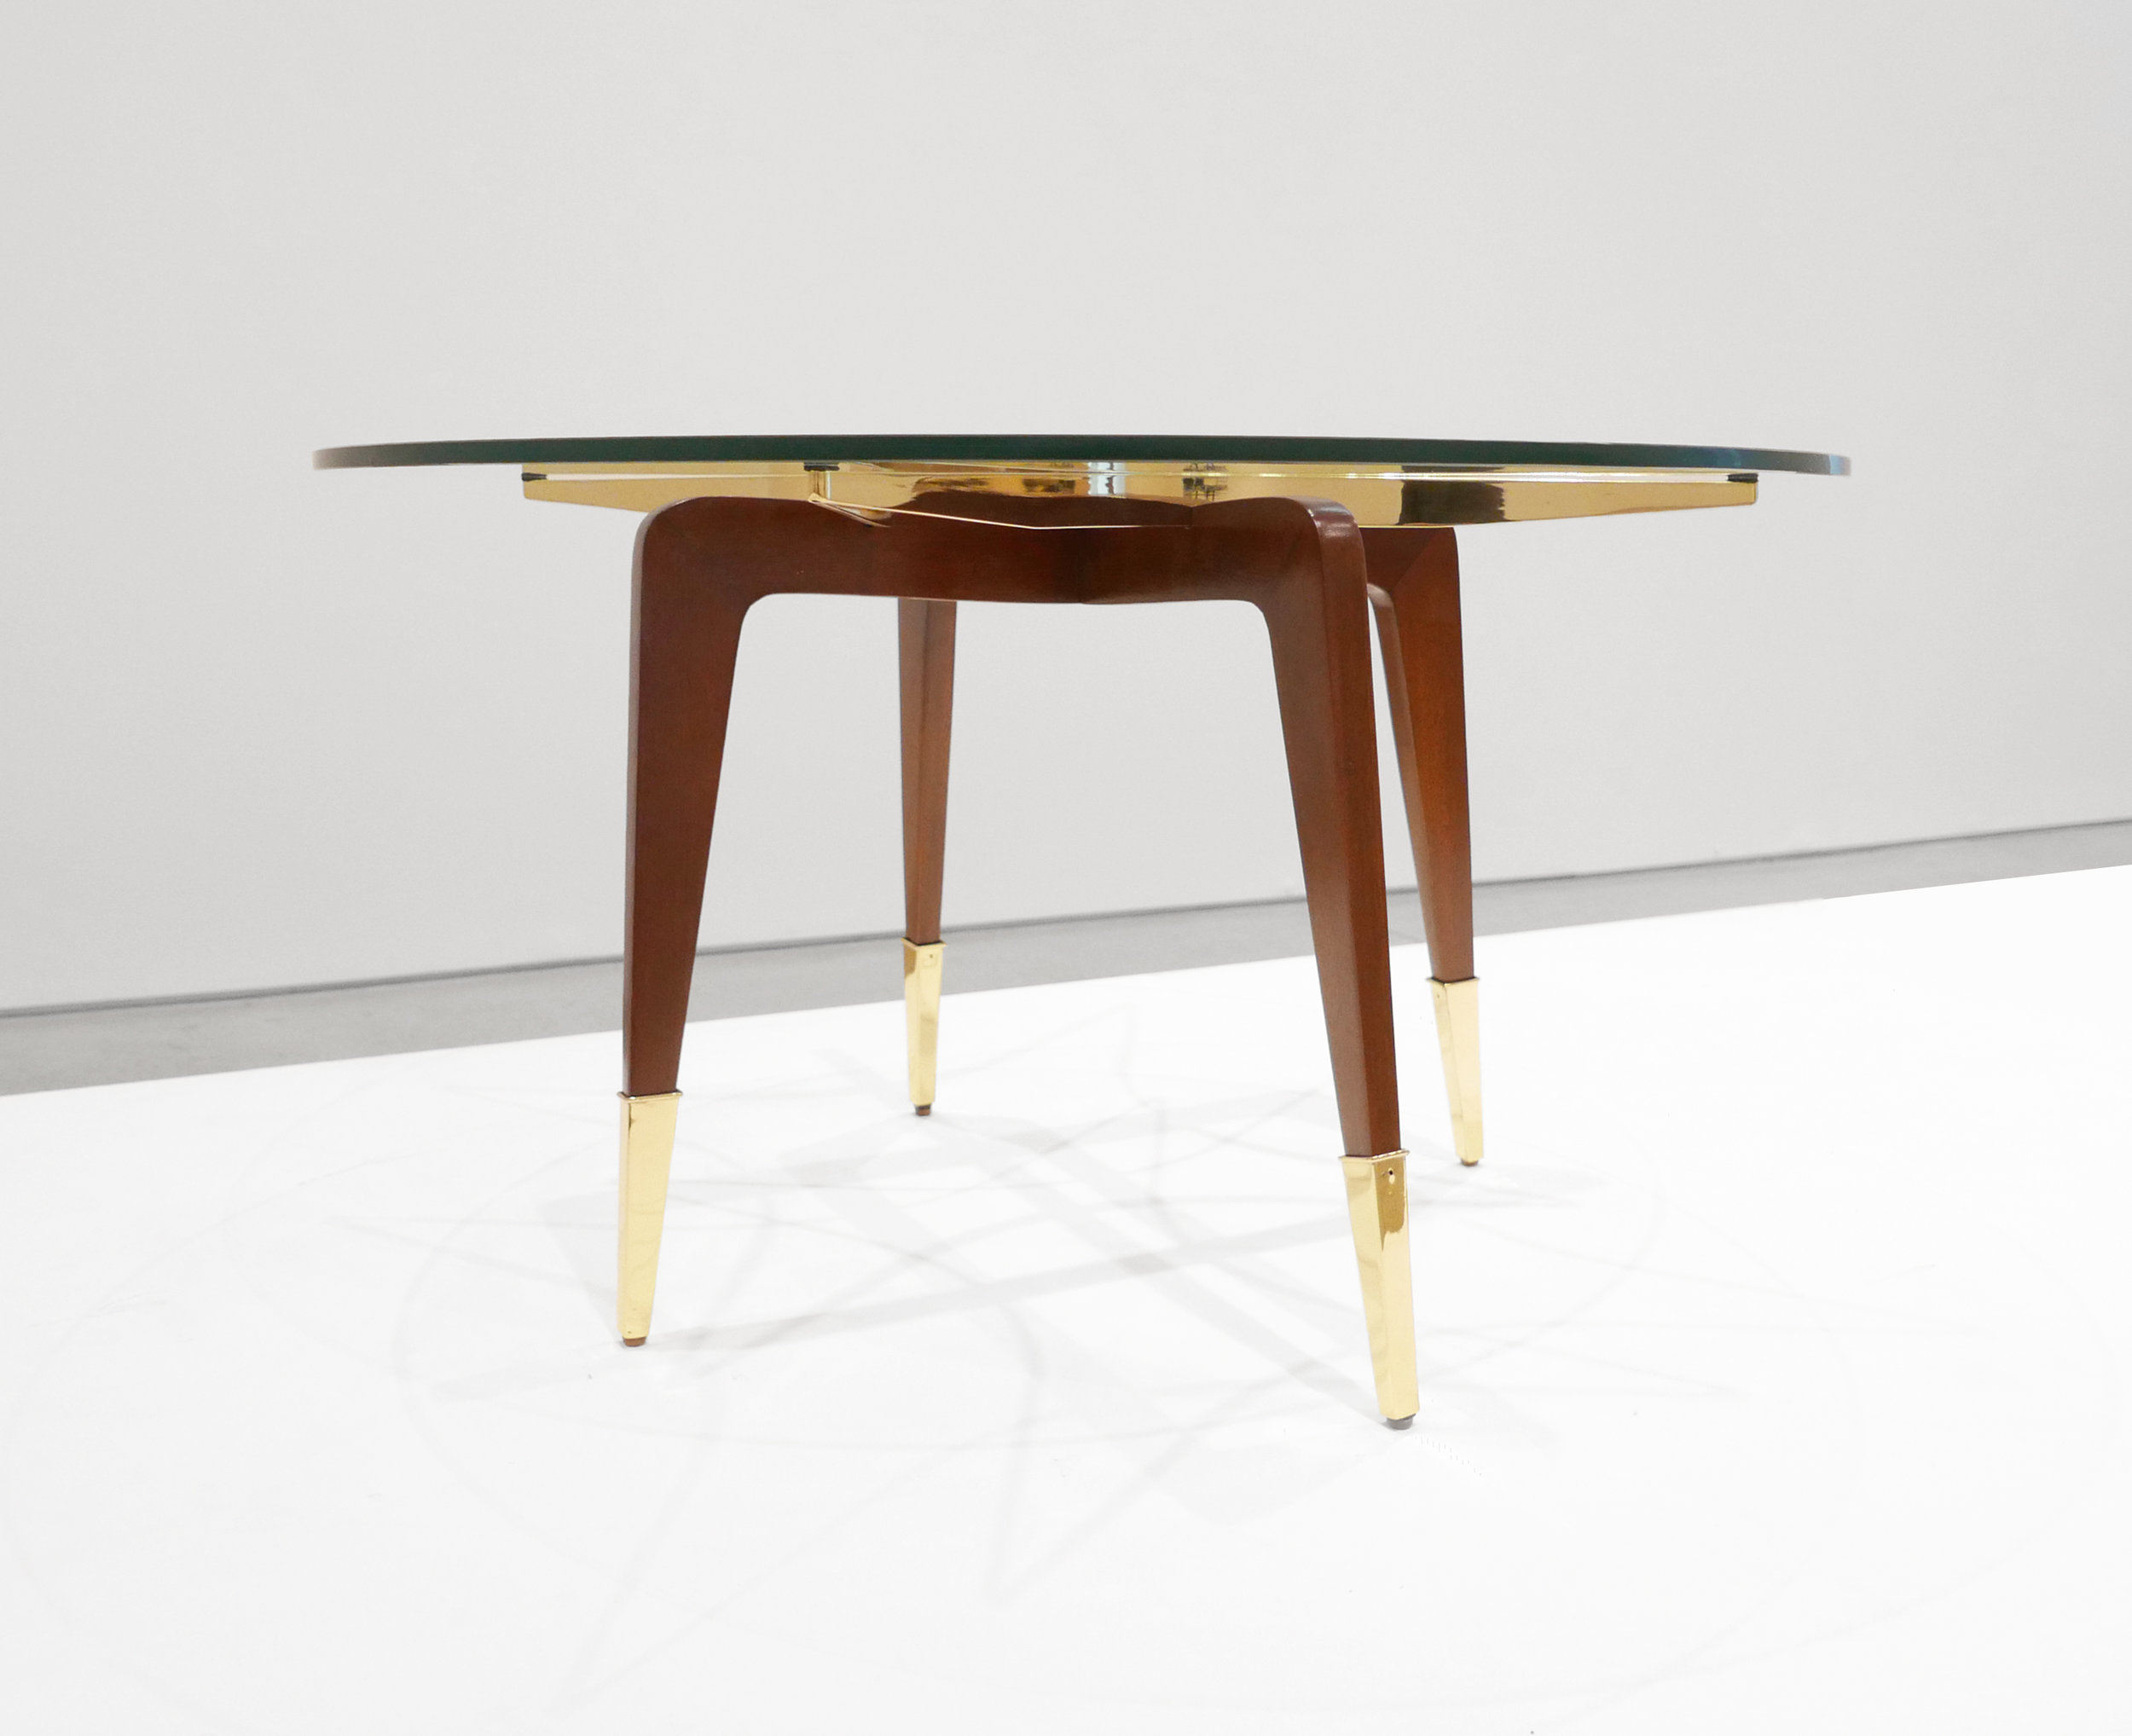 Paolo Buffa, Italian Mid-Century Coffee Table, c. 1950 - 1959, Brass, Wood, Glass, 18 H x 29.5 W inches_4.jpg